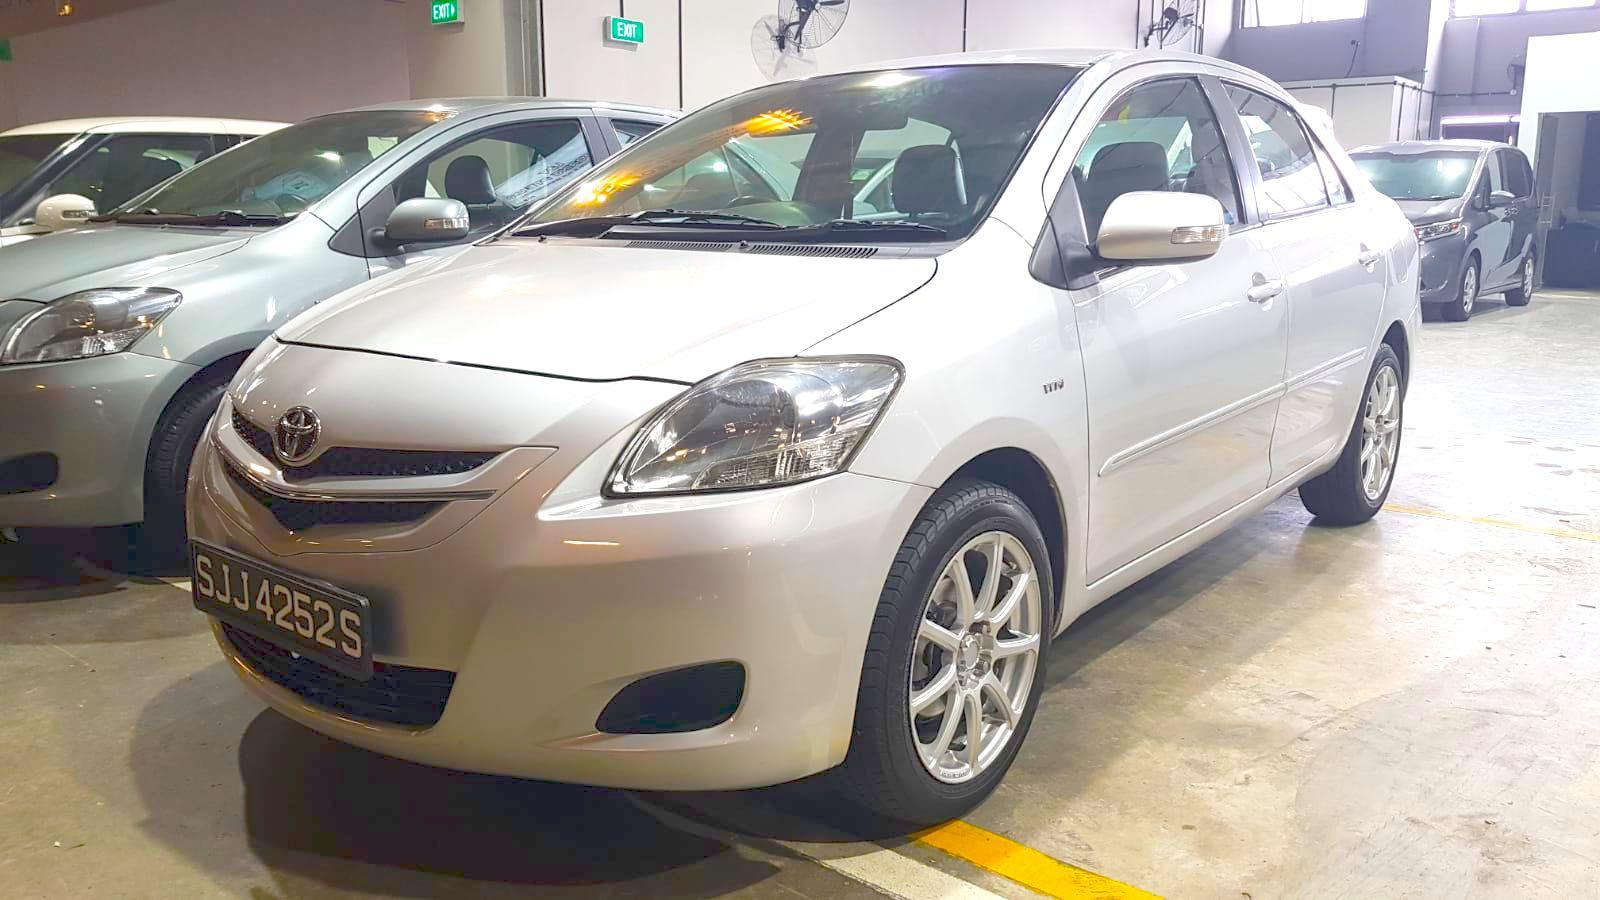 PROMO* Toyota VIOS @ $45 daily ! Personal/PVH usage welcome